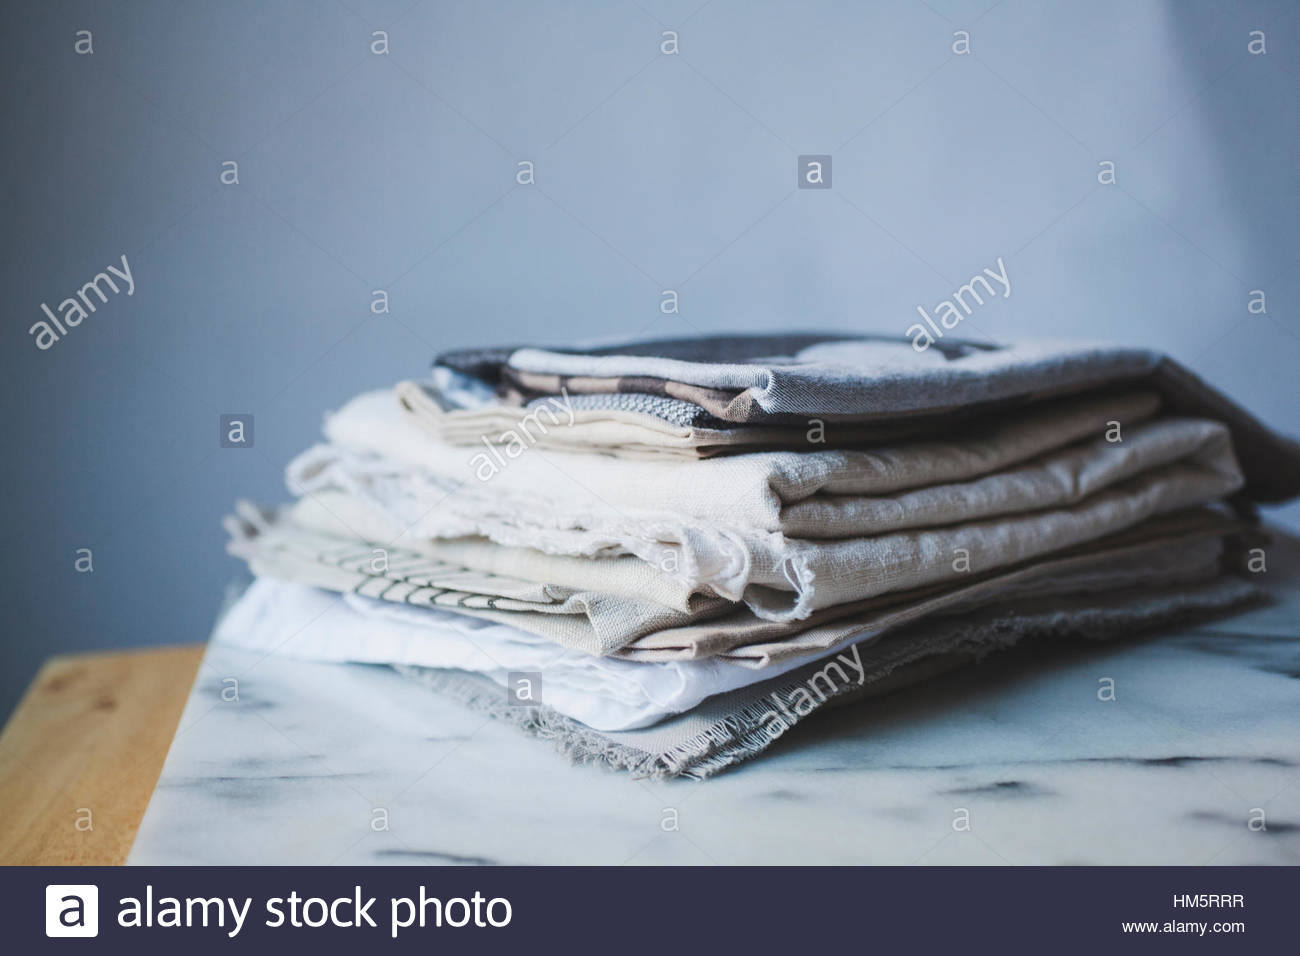 Tablecloths on table by wall - Stock Image